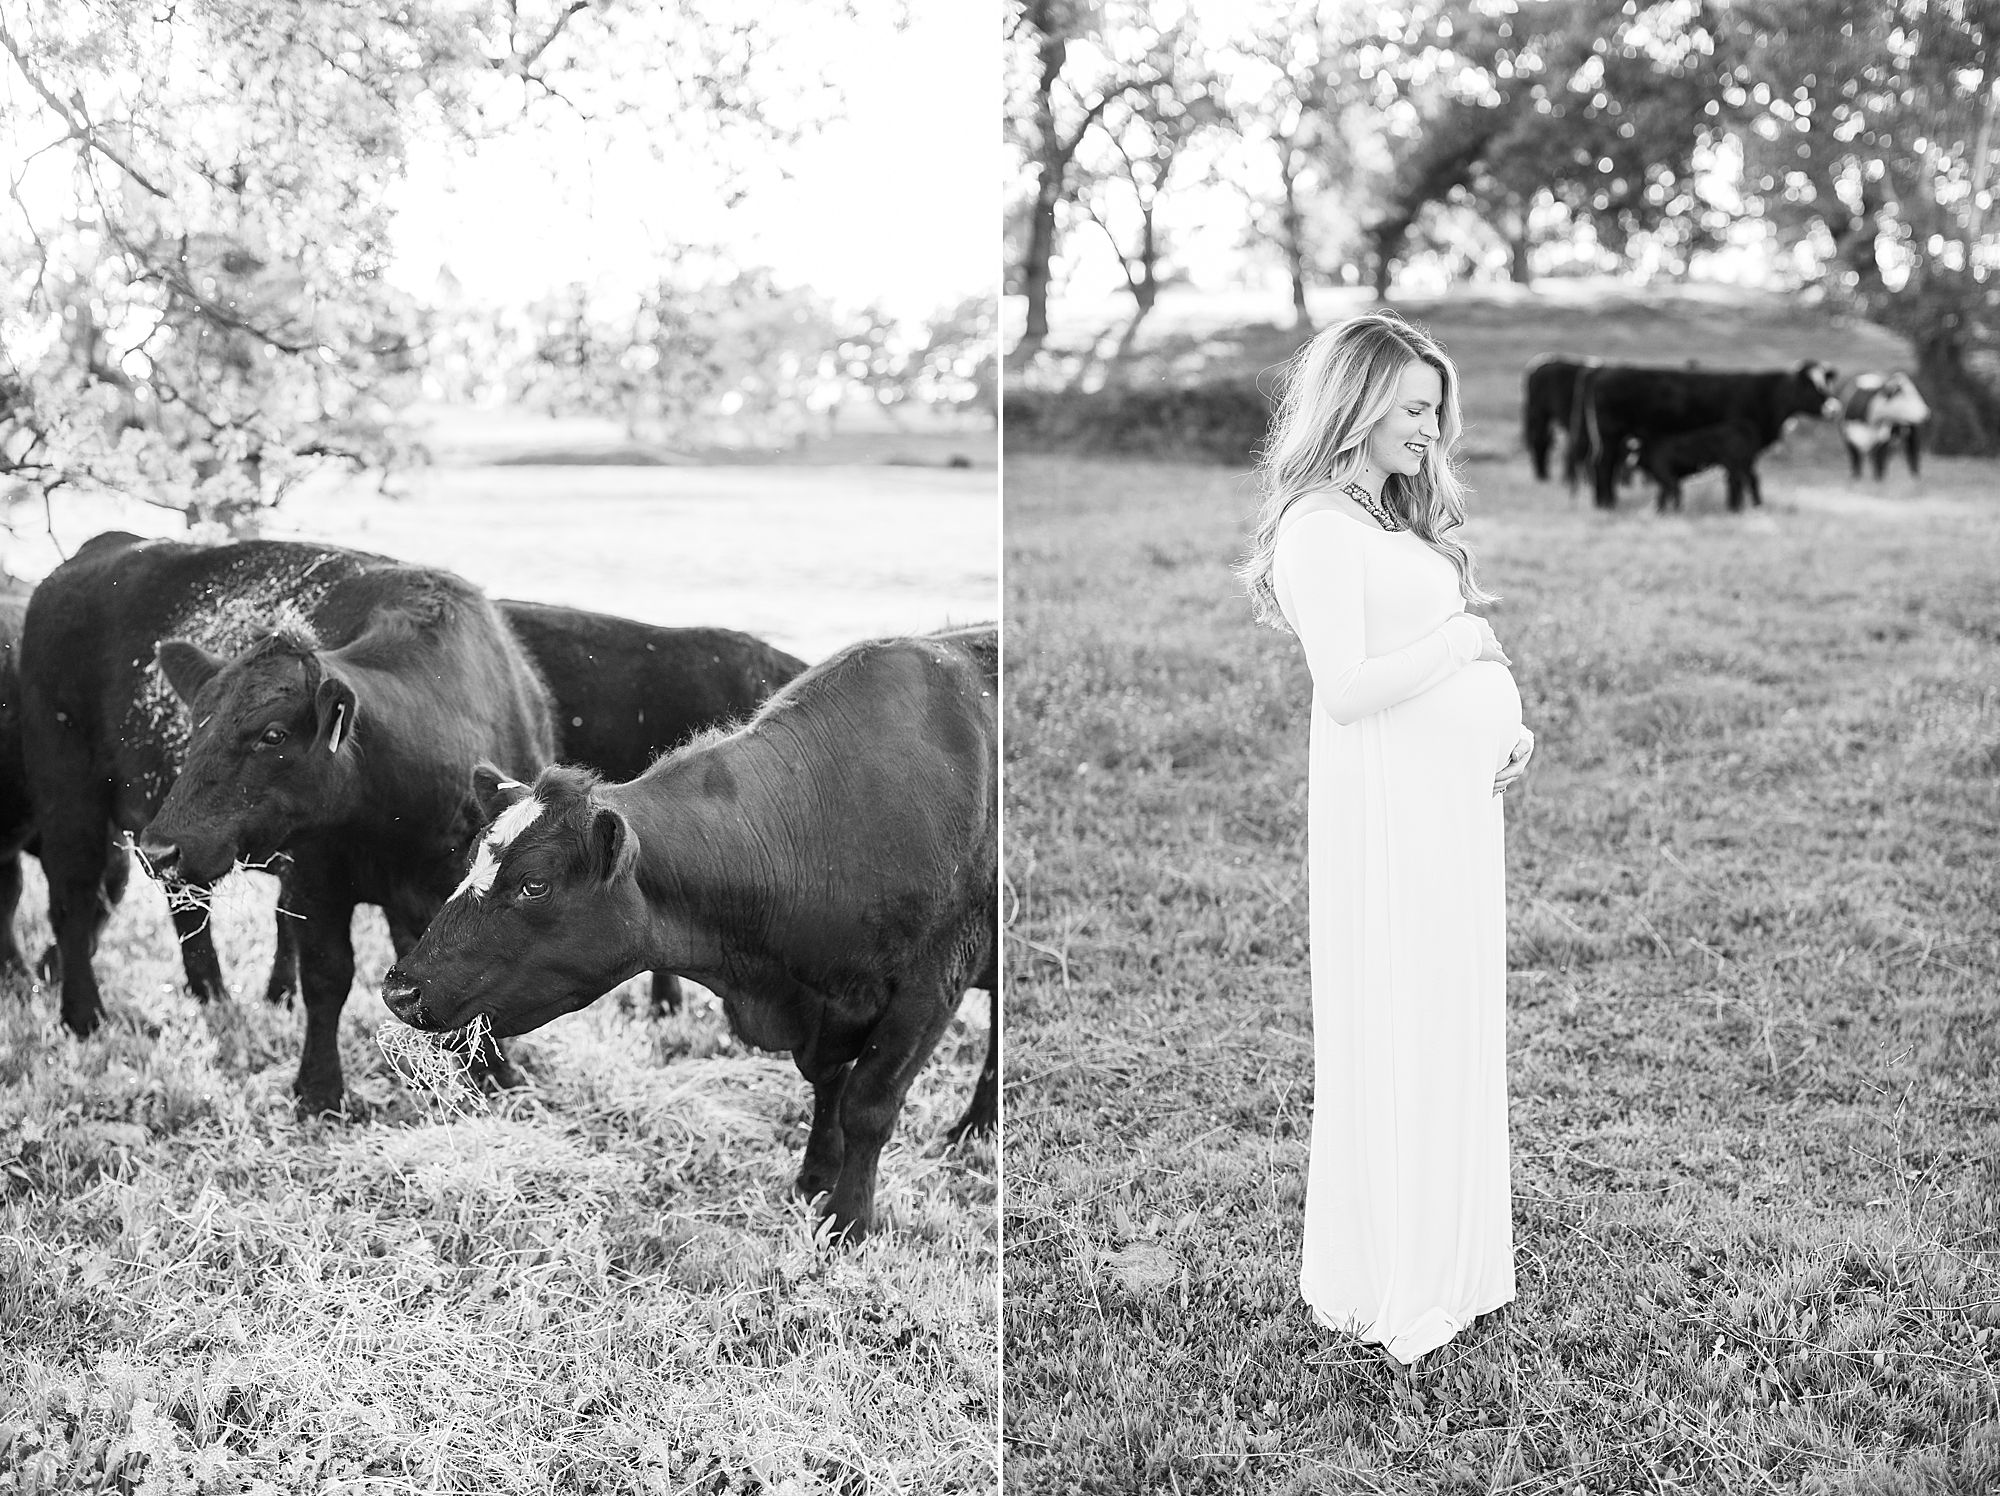 Sheridan Maternity Session - Lexie and Nick - Sacramento Maternity Photos by Ashley Baumgartner - Farmland, 4H Maternity with Cows_0013.jpg